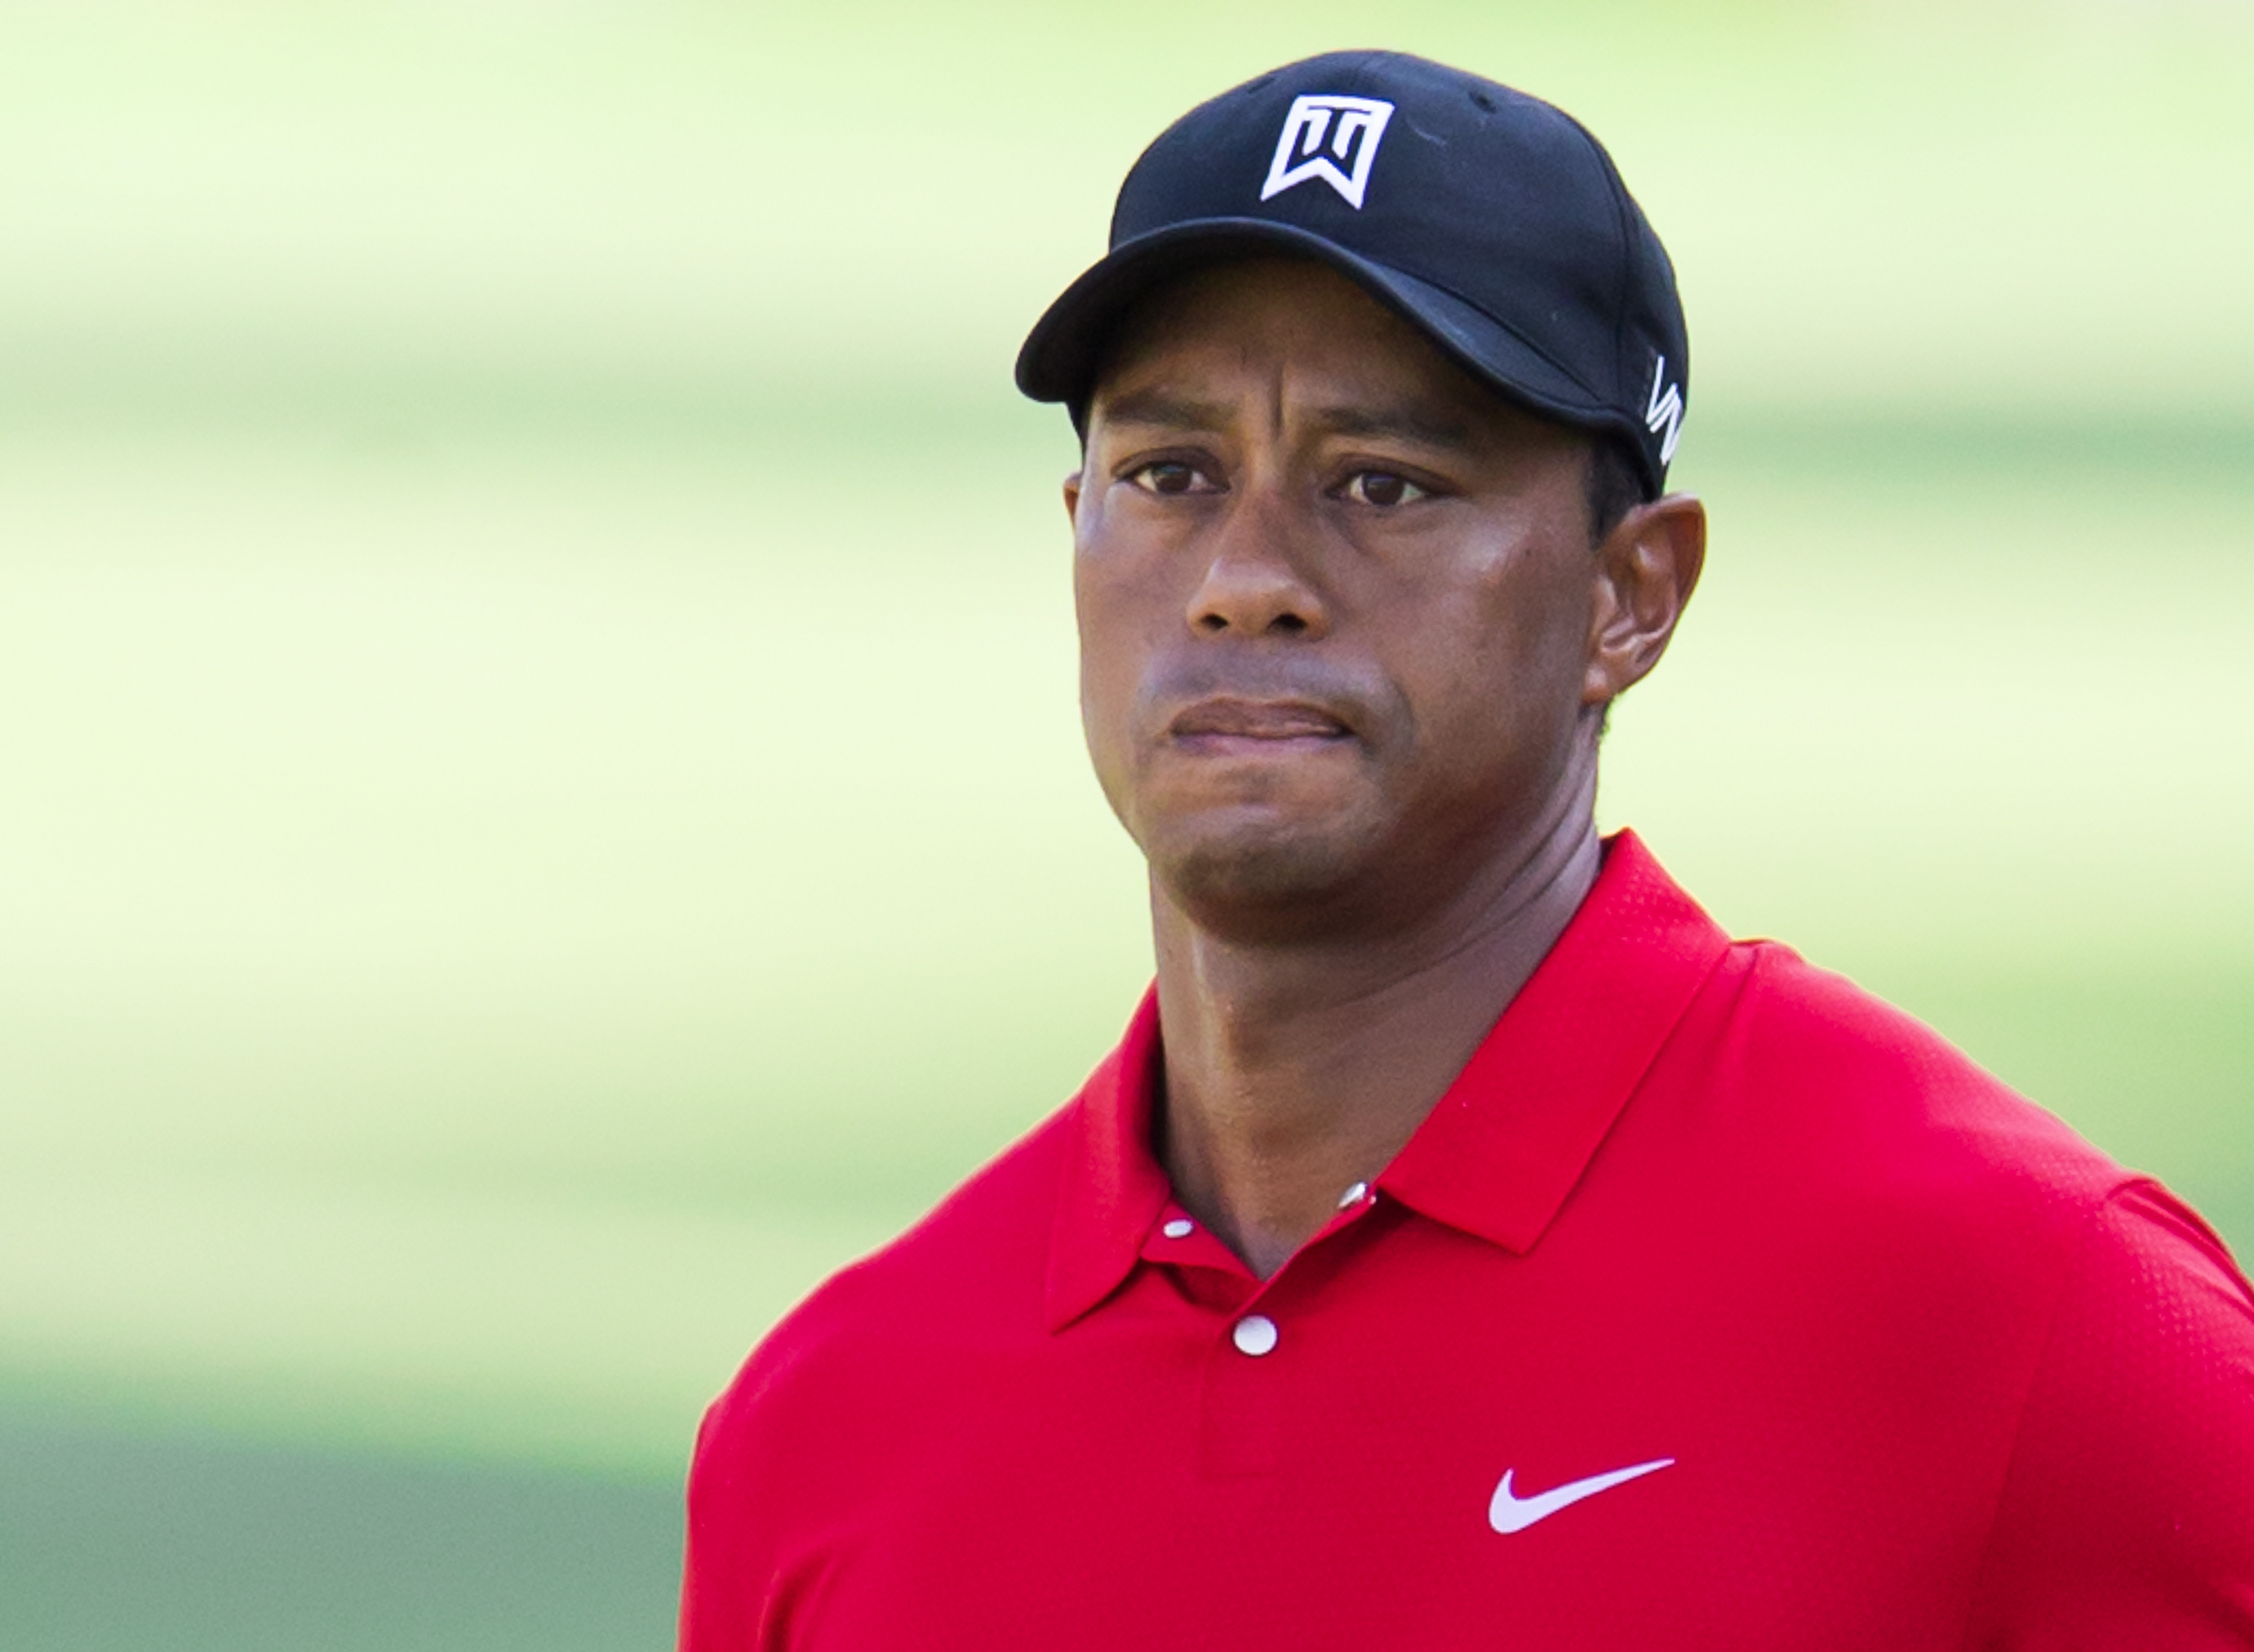 tiger woods faces an uphill battle after his second back surgery